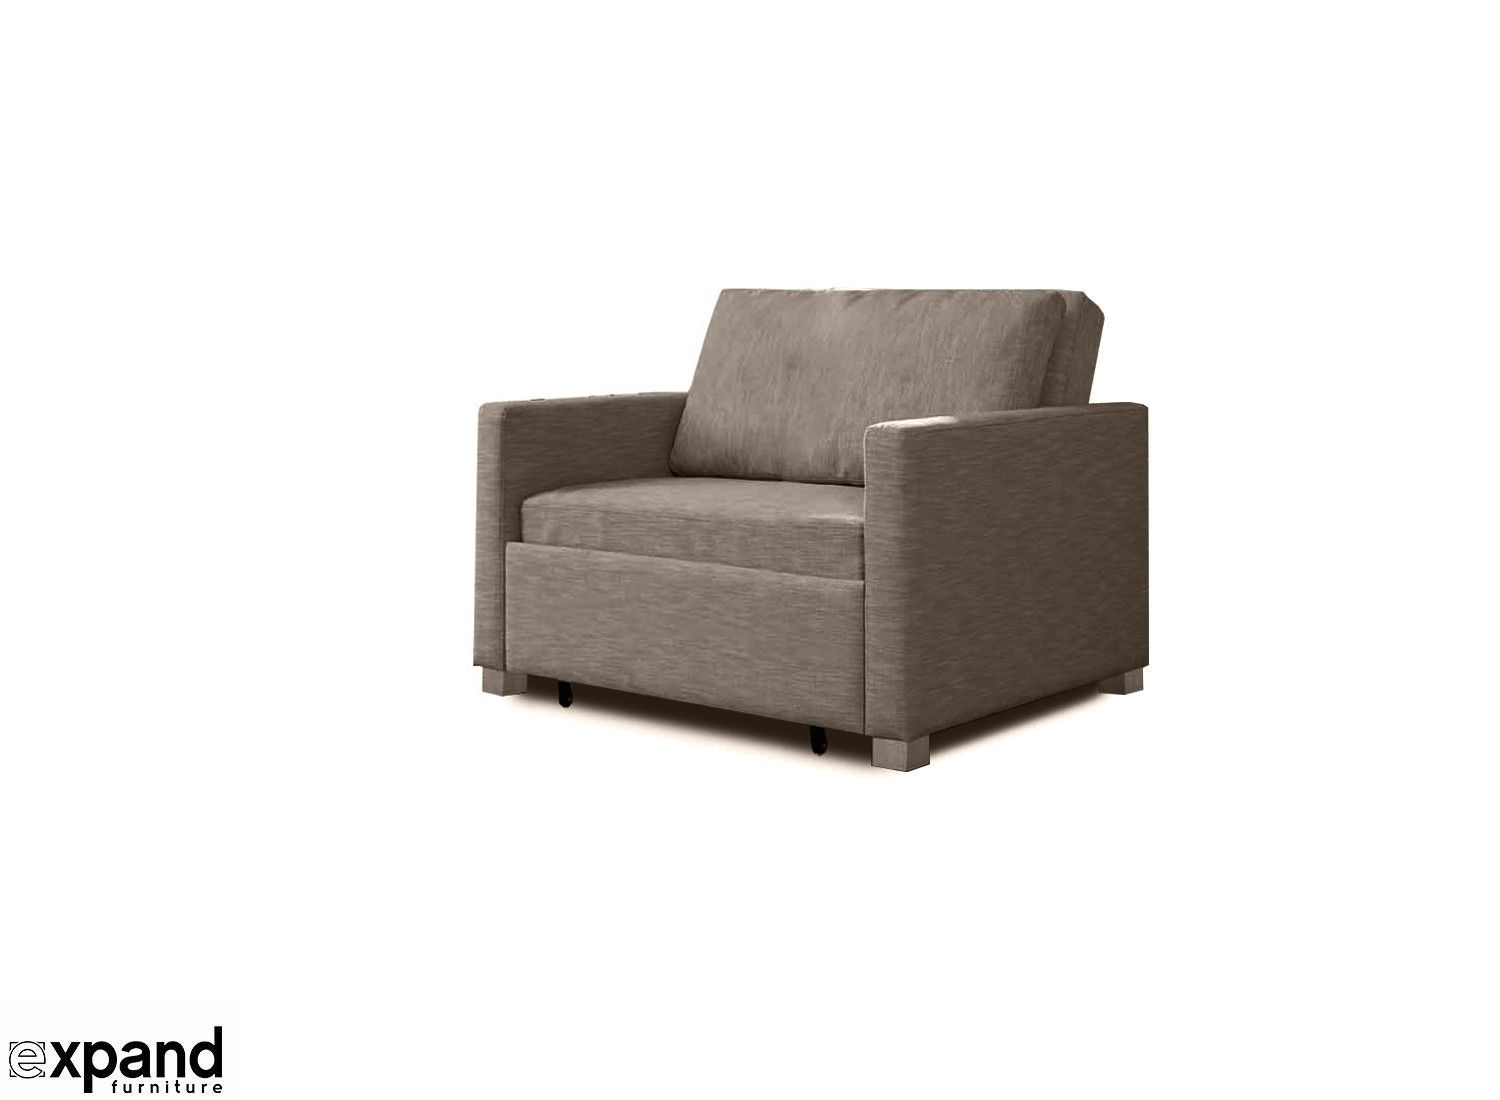 Stupendous Harmony Single Sofa Bed With Memory Foam Single Sofa Lamtechconsult Wood Chair Design Ideas Lamtechconsultcom